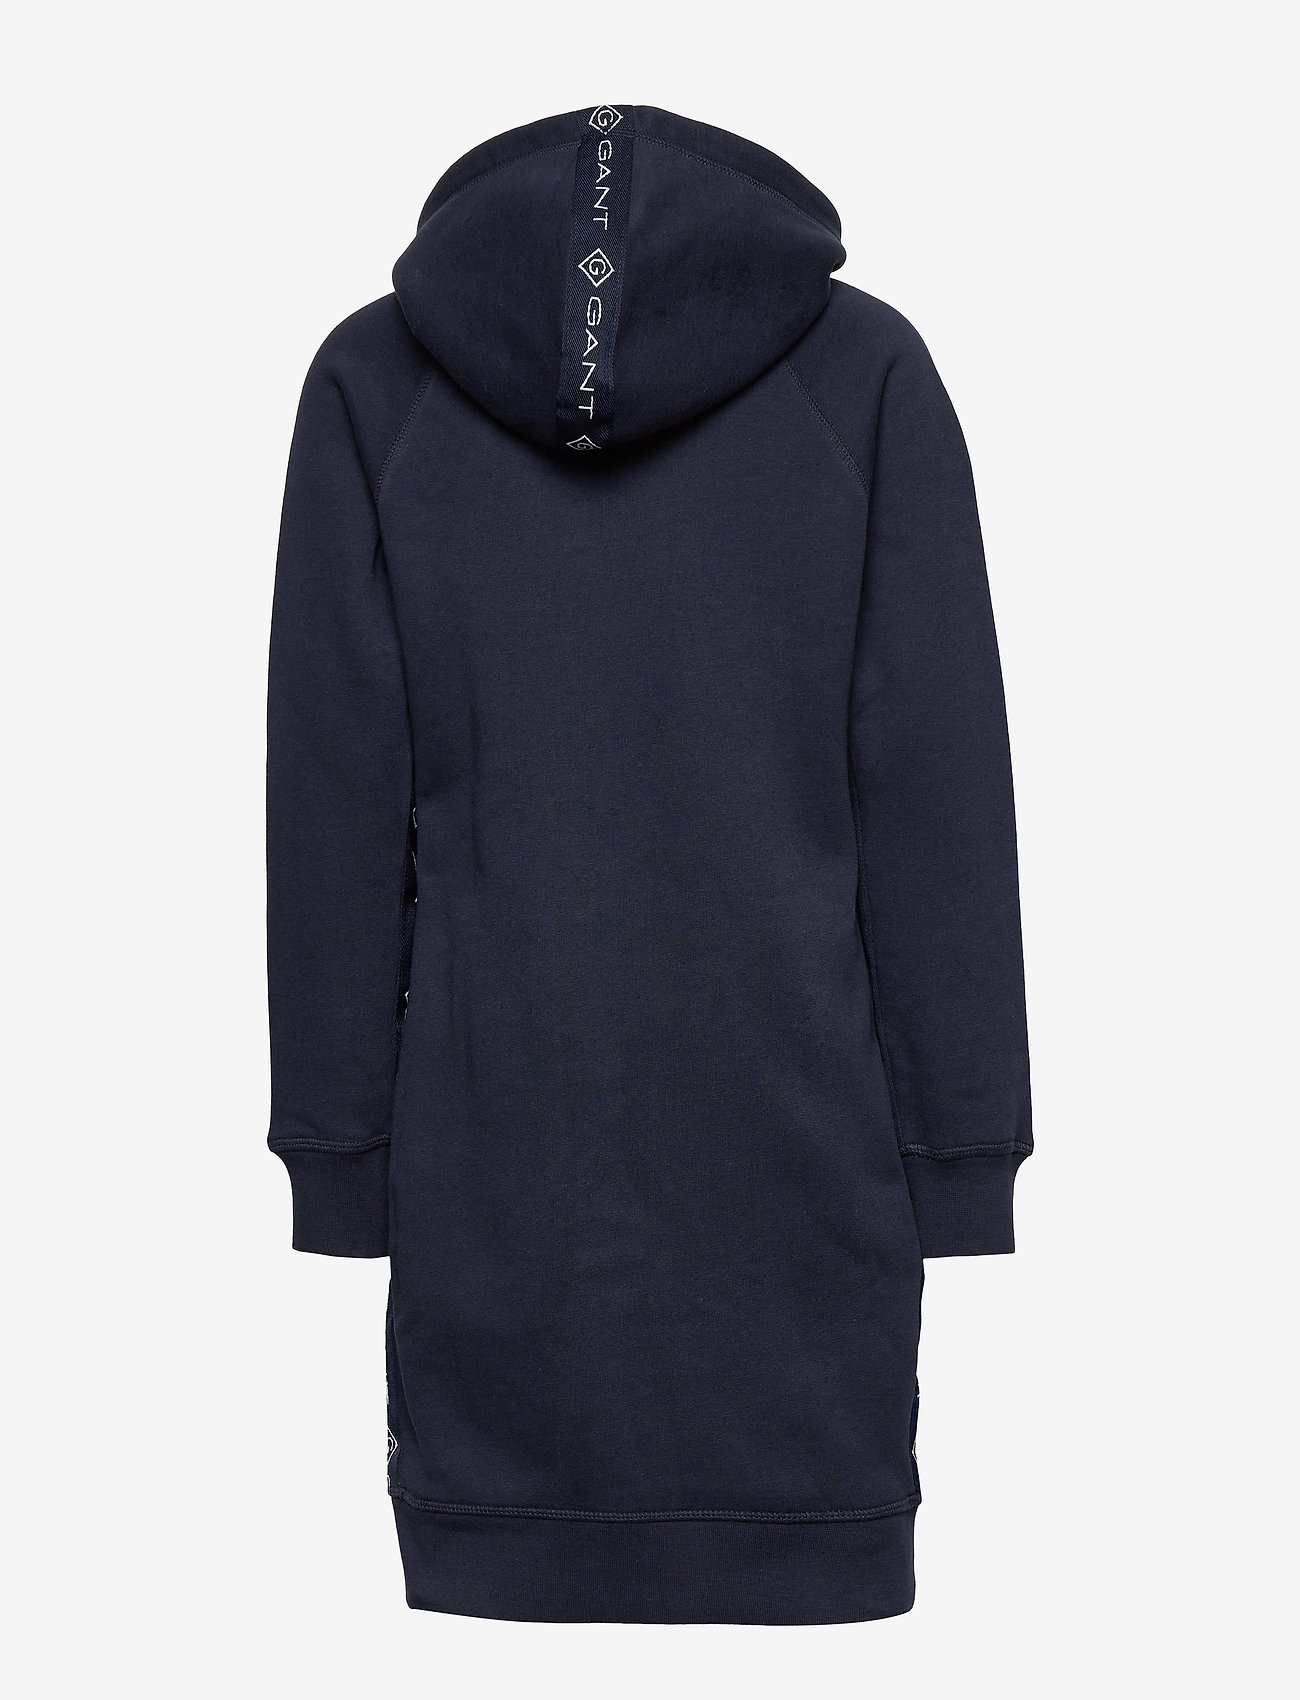 GANT - D1. LOCK UP STRIPE HOODIE DRESS - kleider - evening blue - 1